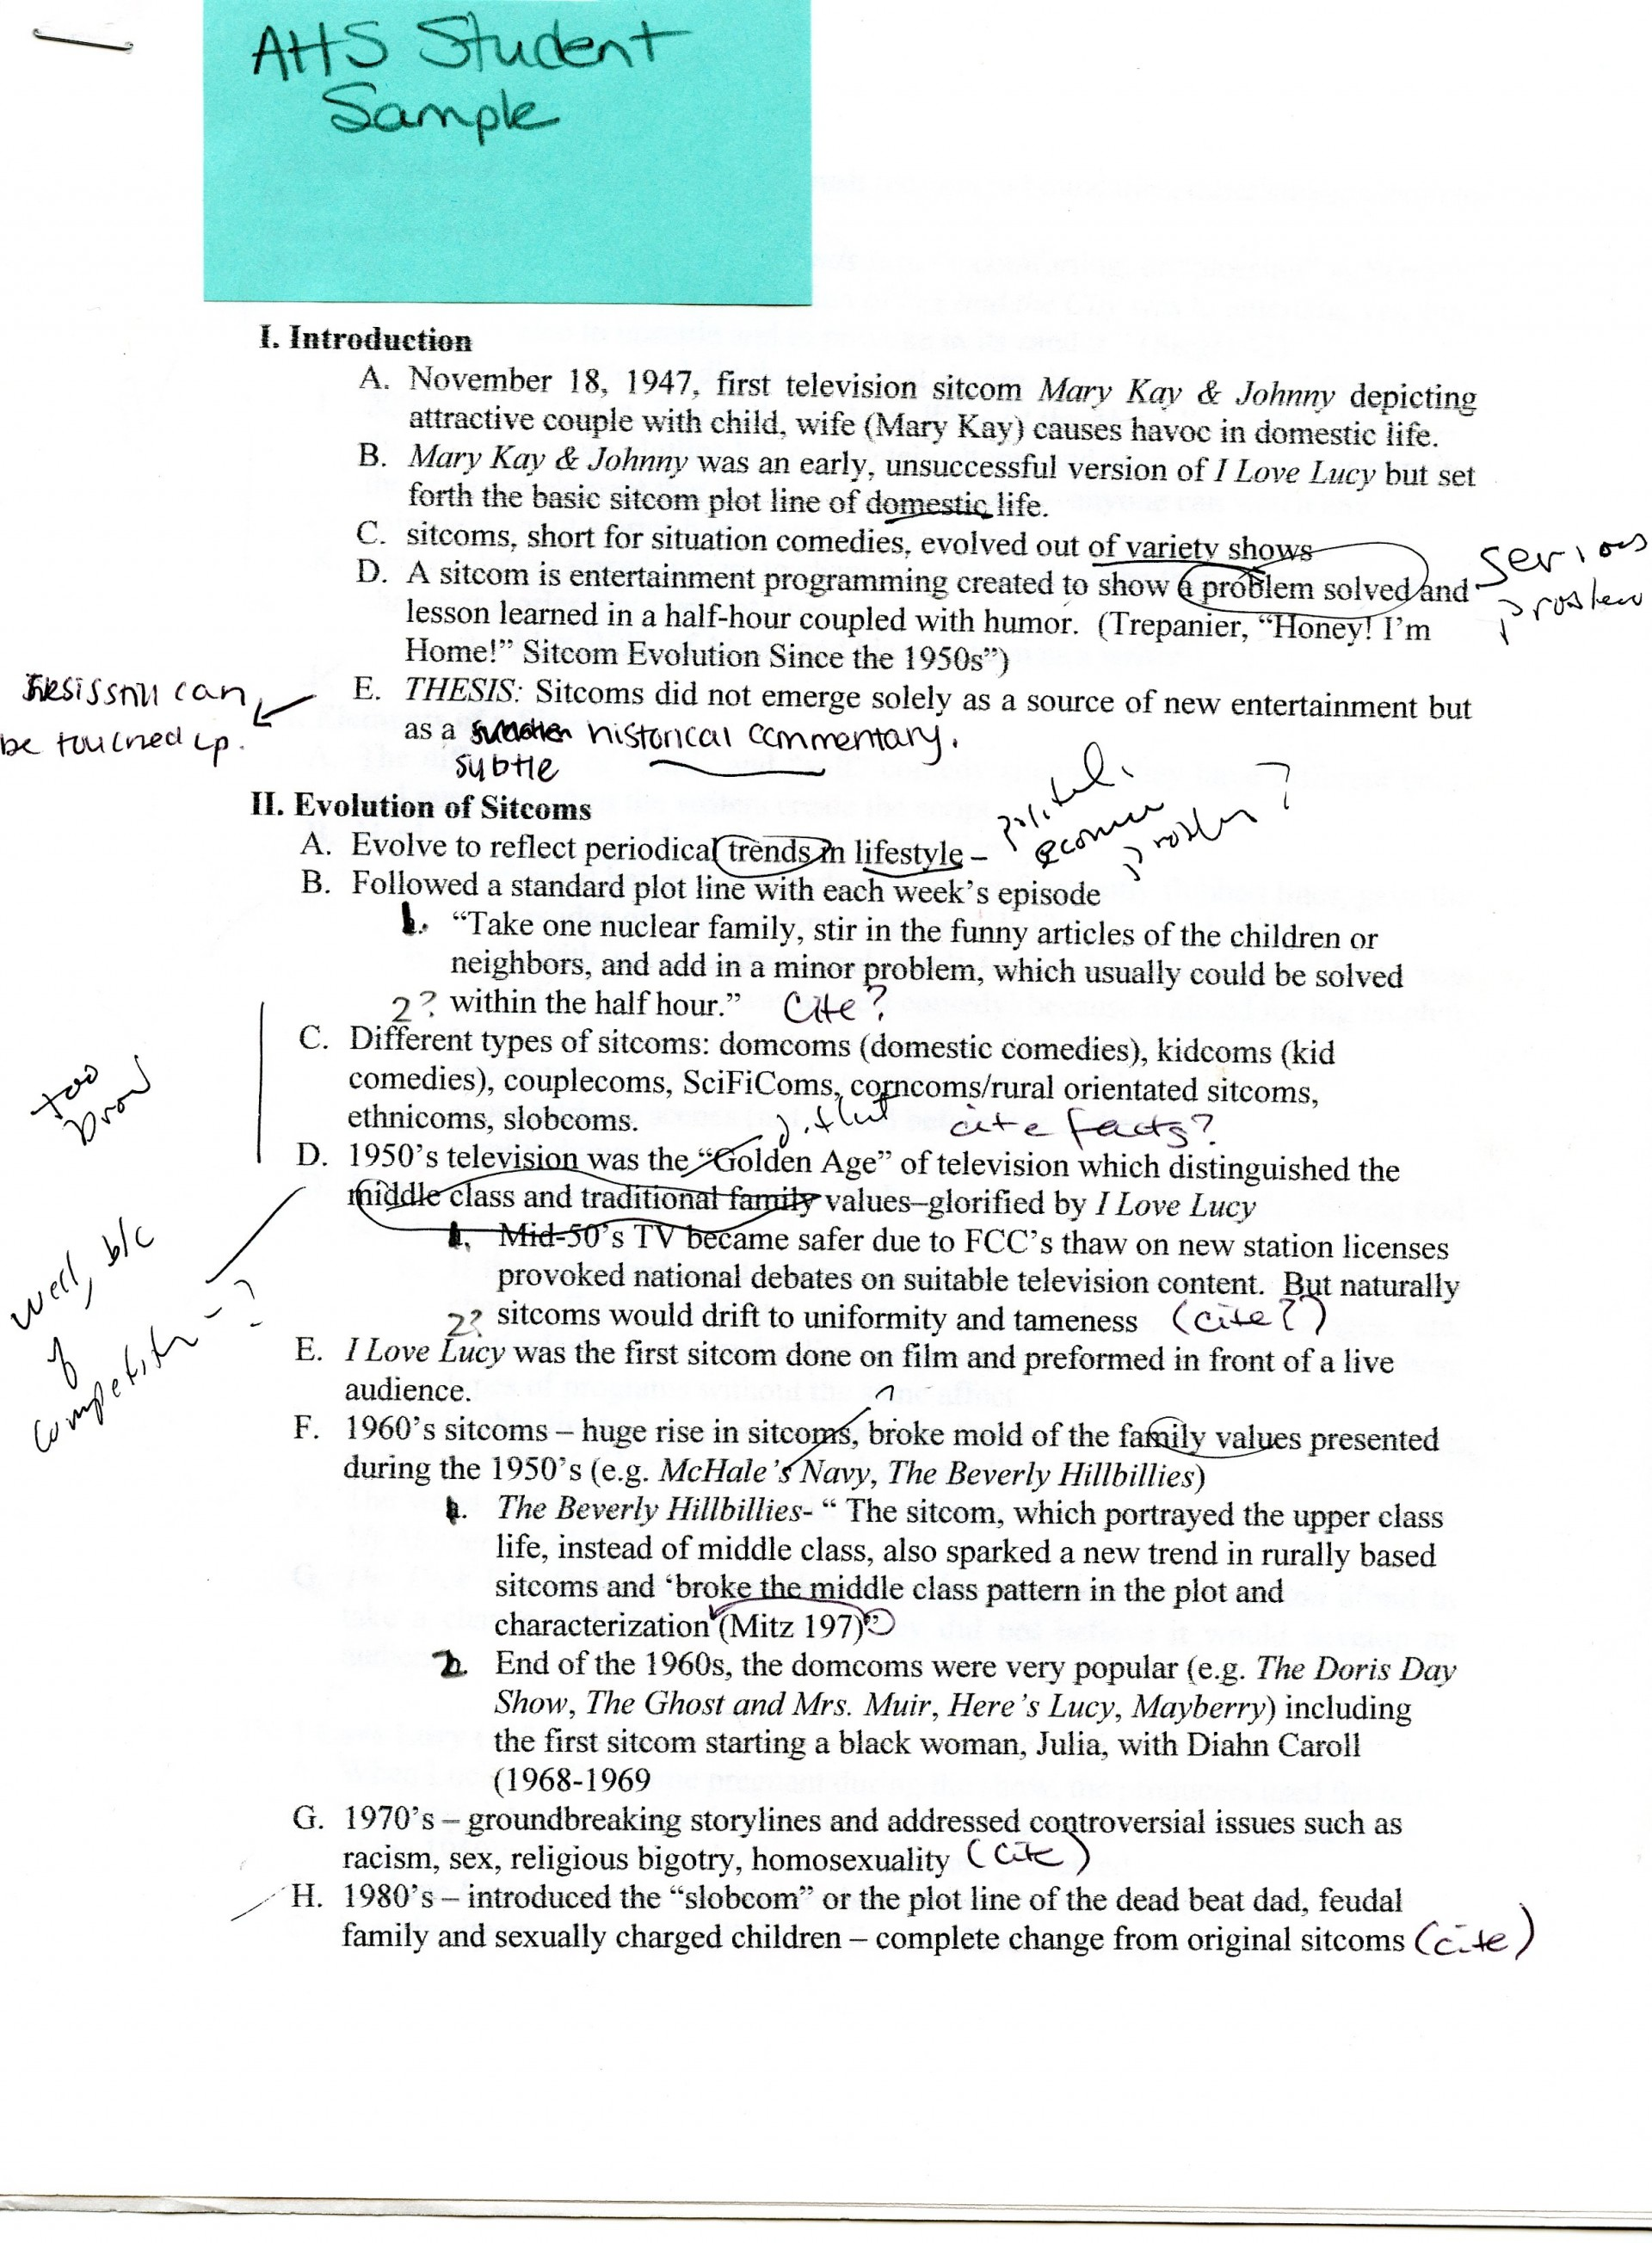 007 Smp Sample Outline 1 Thematic Essay Top Topics For Us History Regents Global 1920